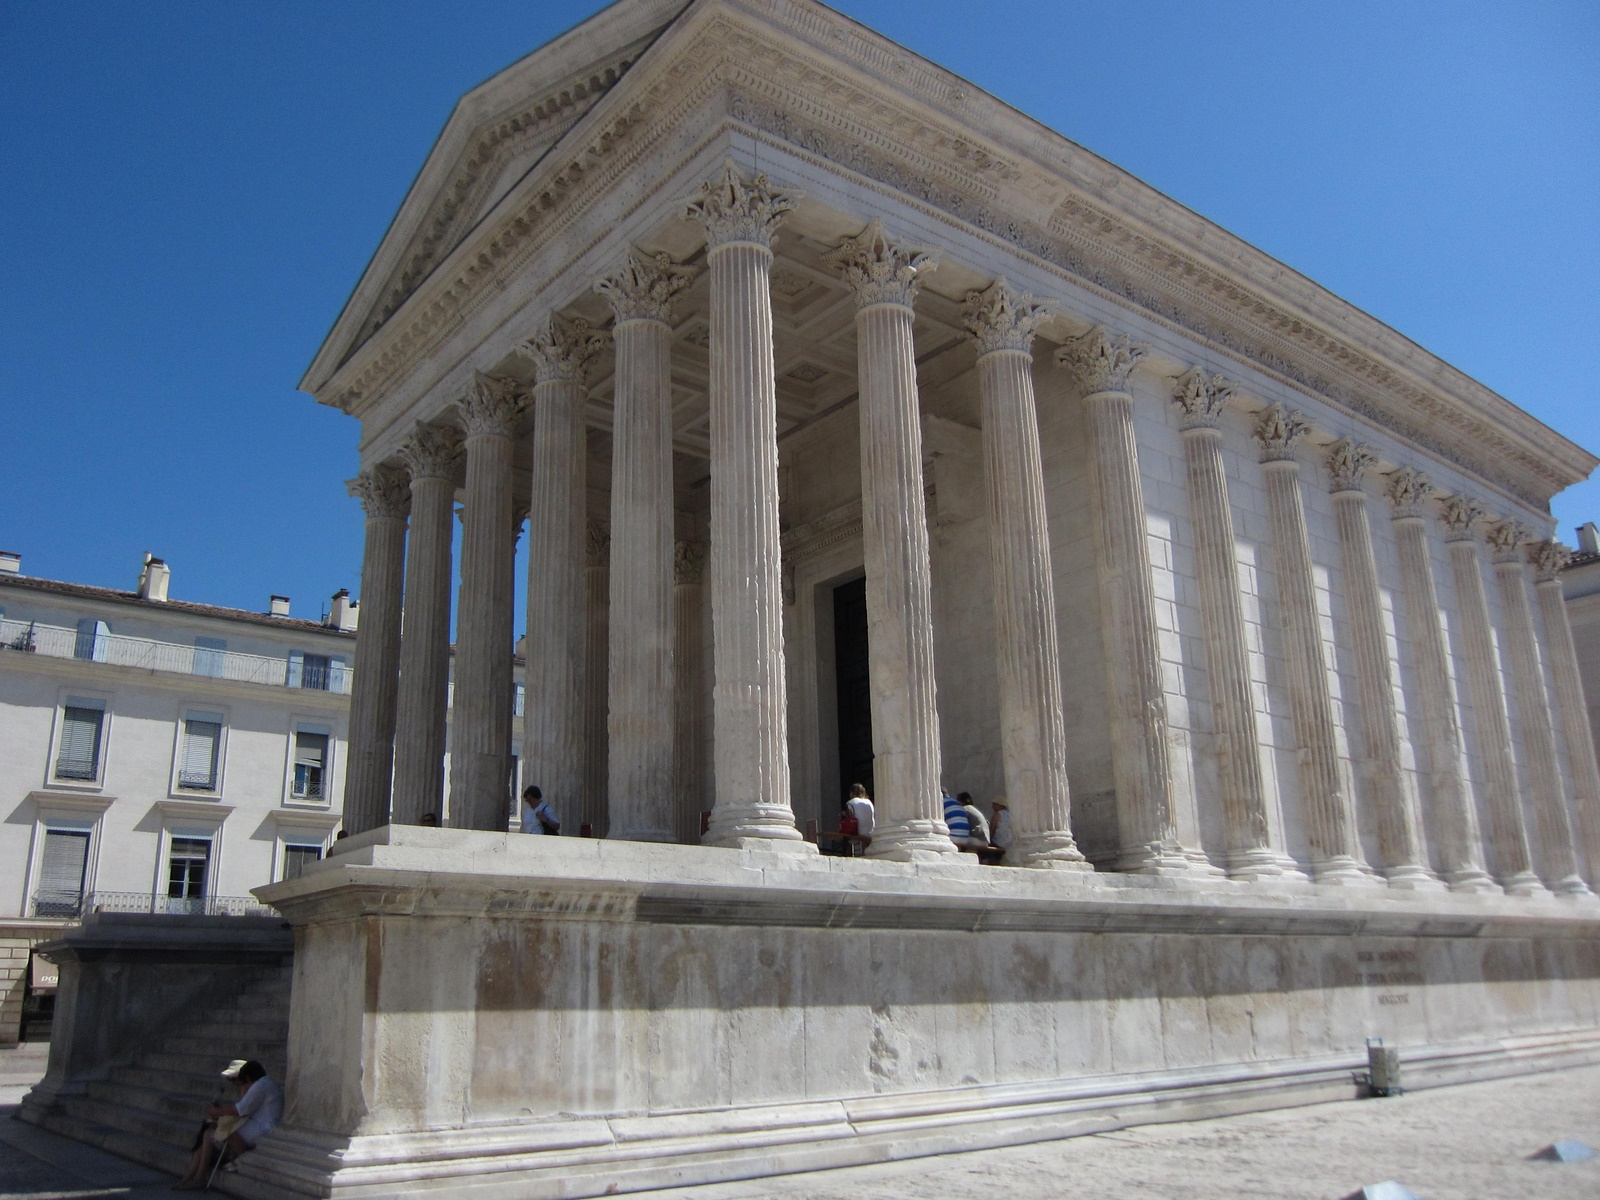 La maison carr e n mes the south of france - Maison carree nimes ...